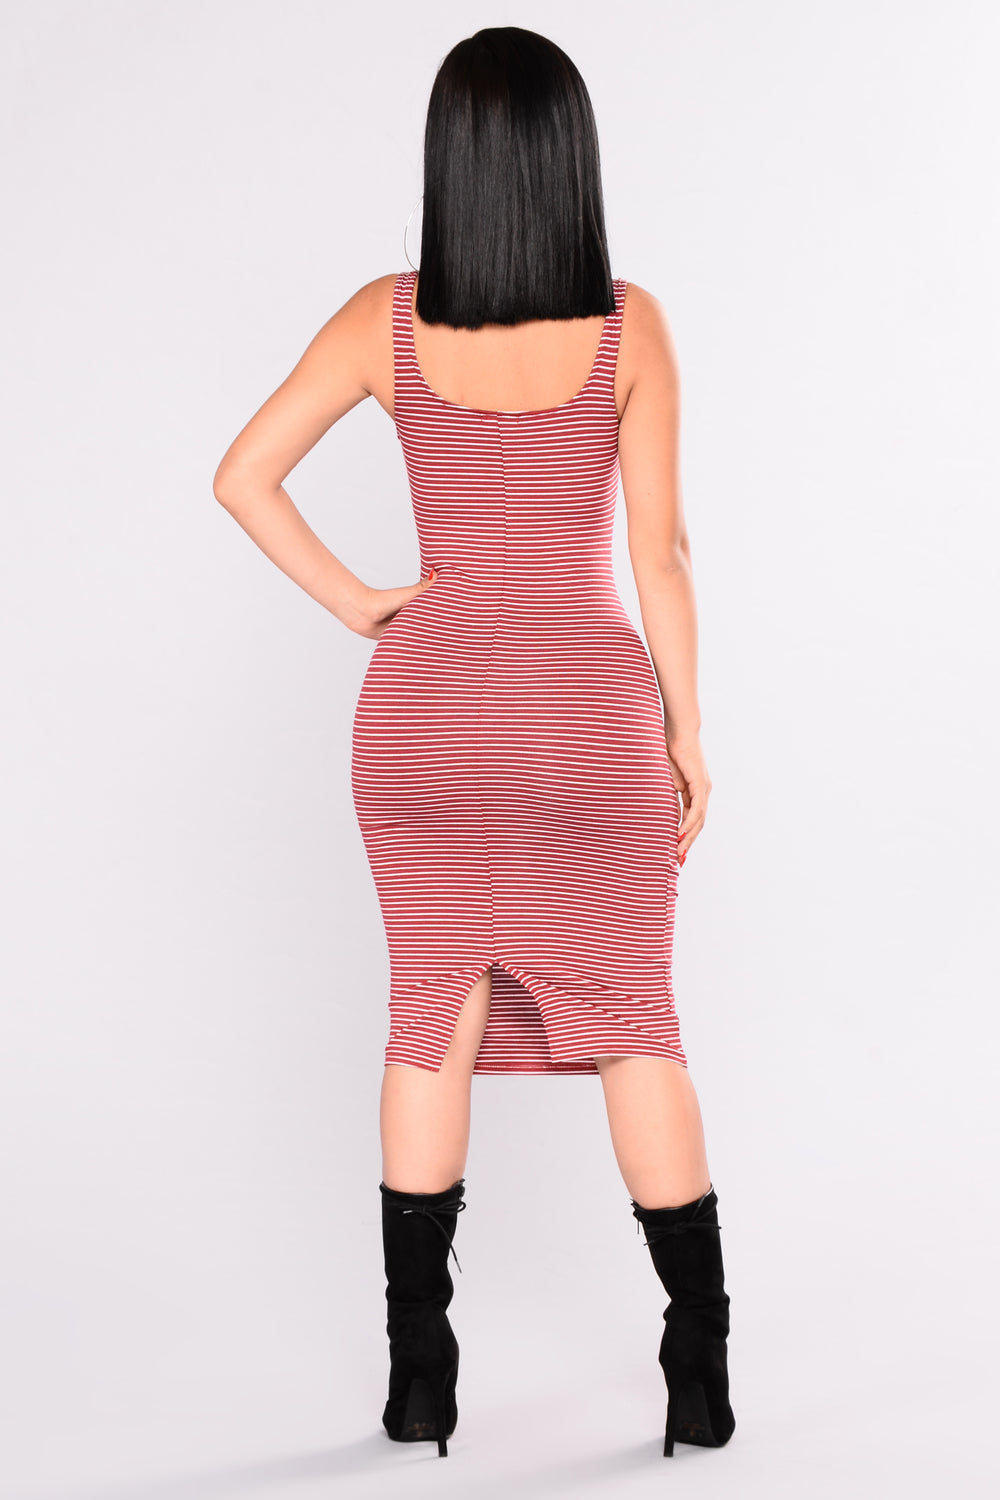 Nelly Striped Dress - Burgundy/White